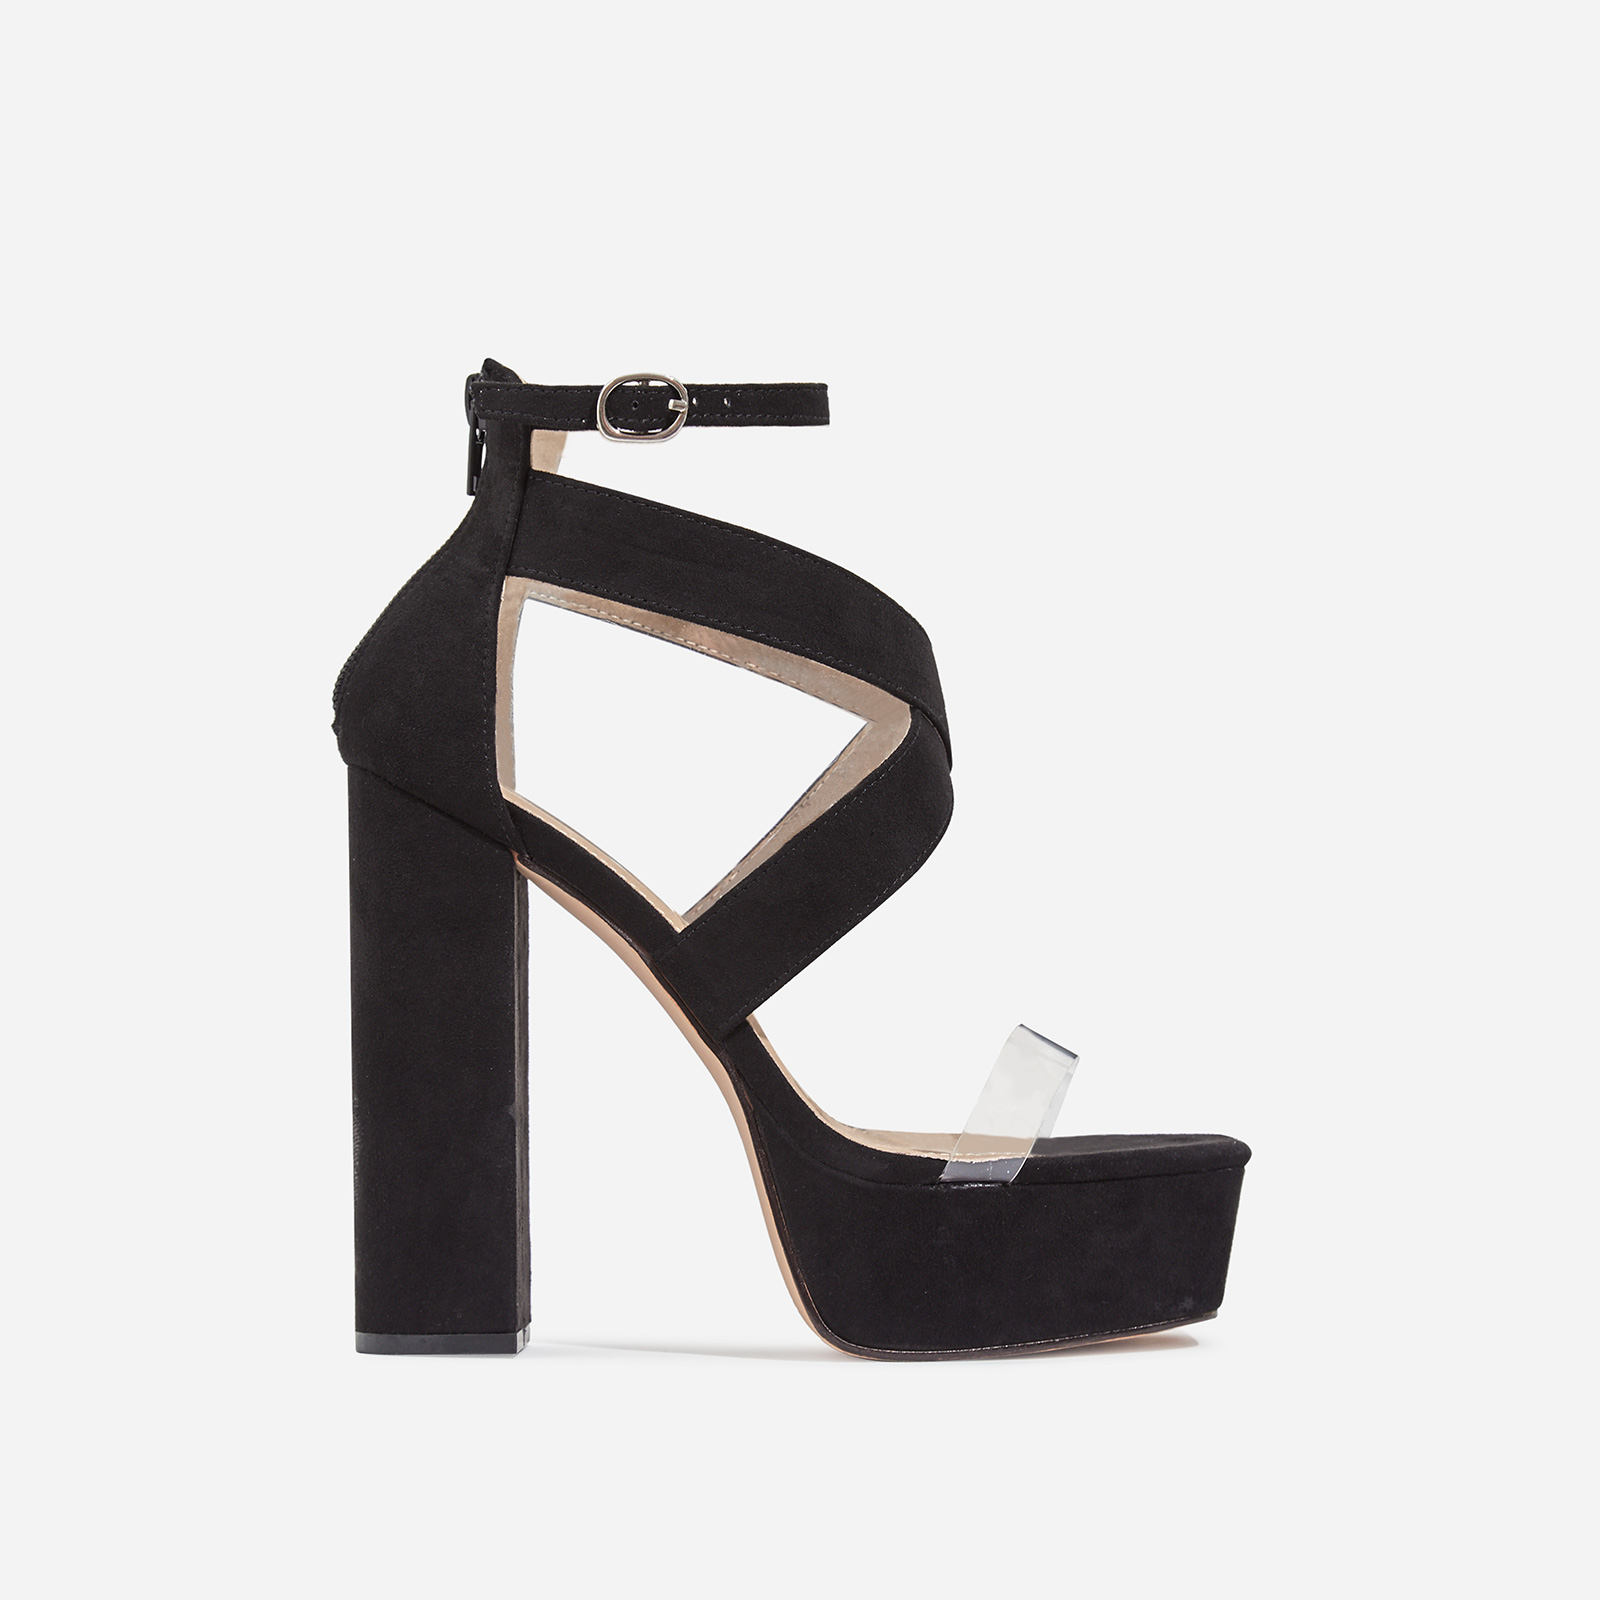 Nirvana Platform Square Toe Perspex Heel In Black Faux Suede